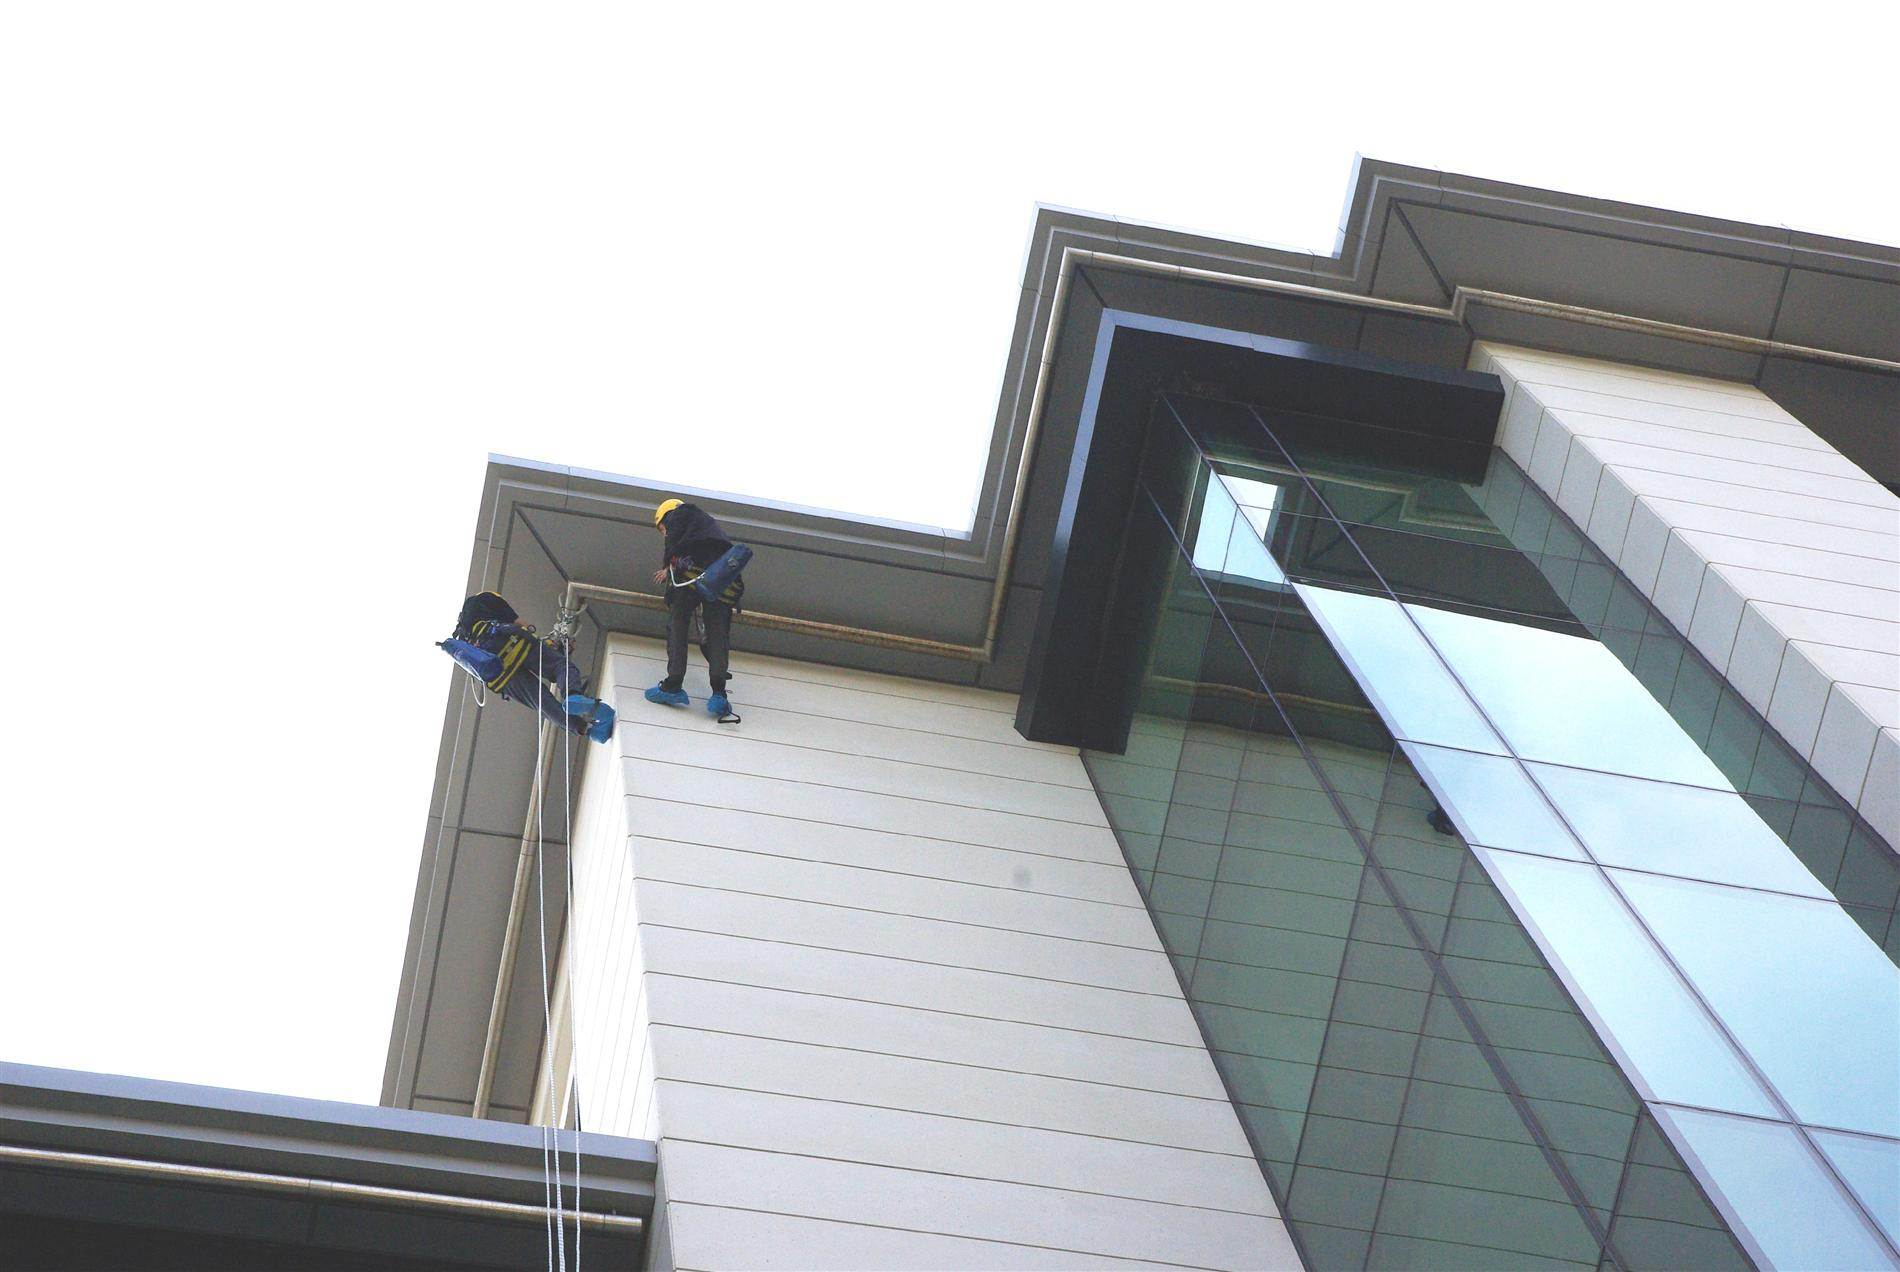 height safety abseil rails for cleaning high rise building